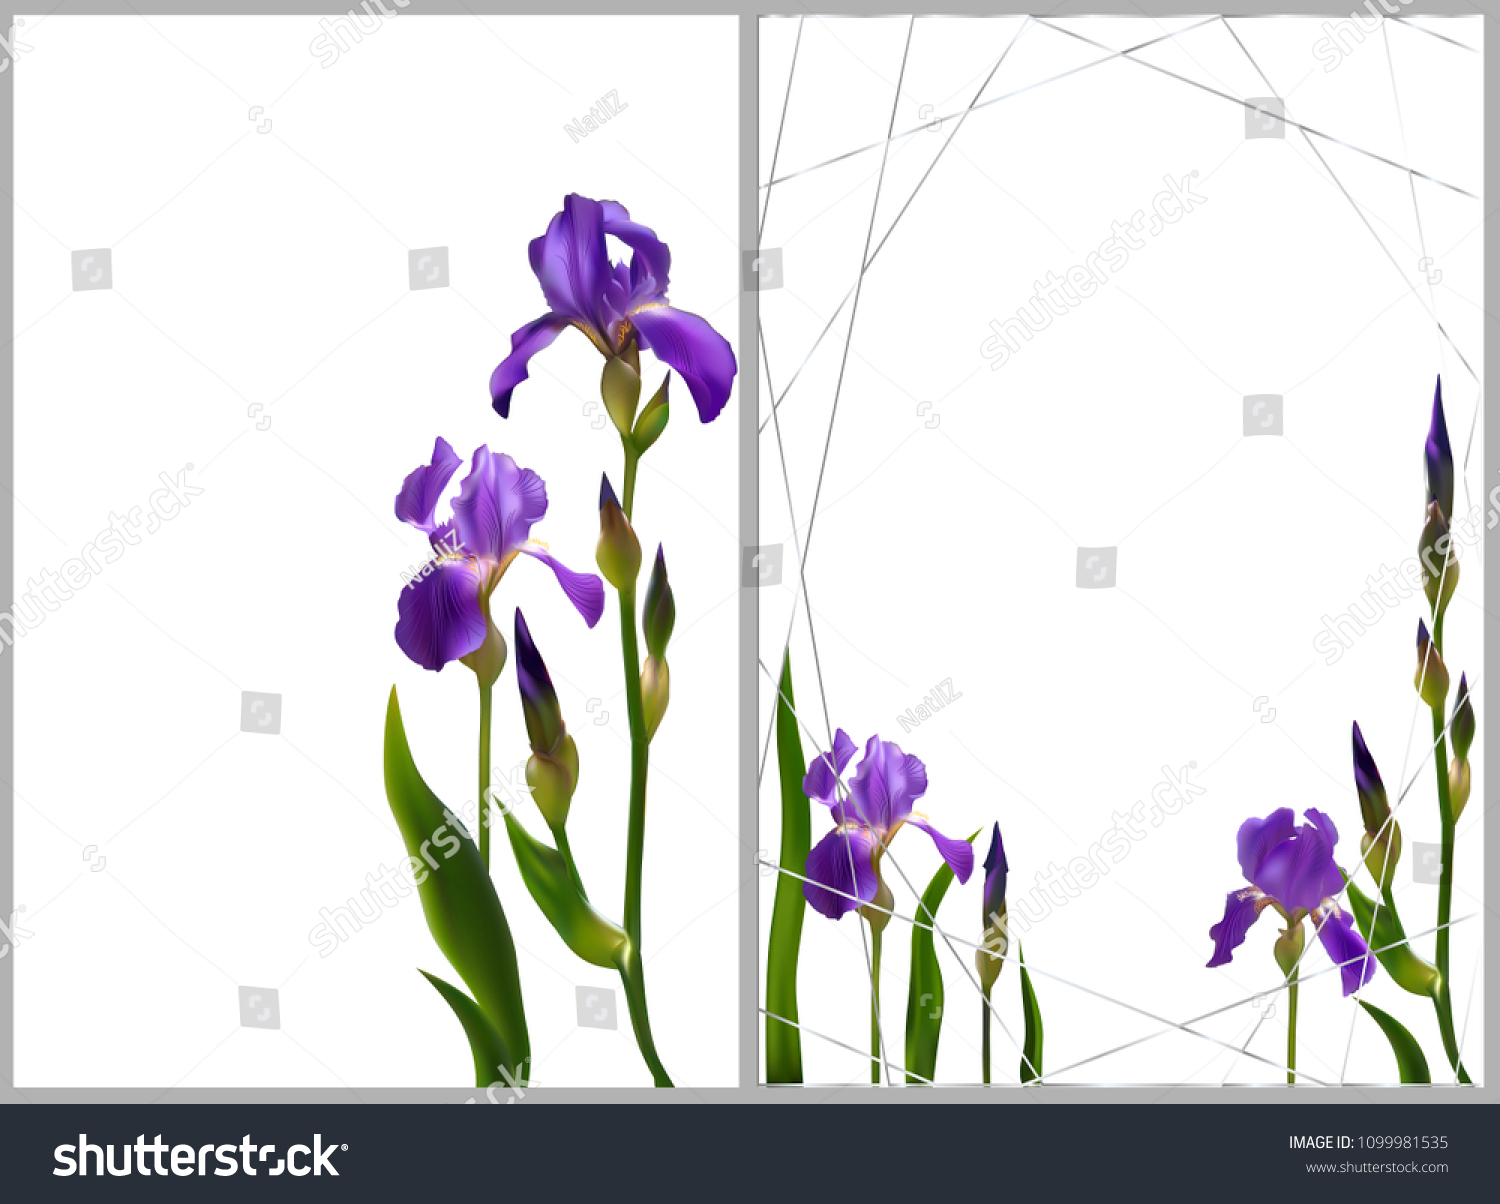 Iris Flowers Floral Background Border Buds Stock Vector 1099981535